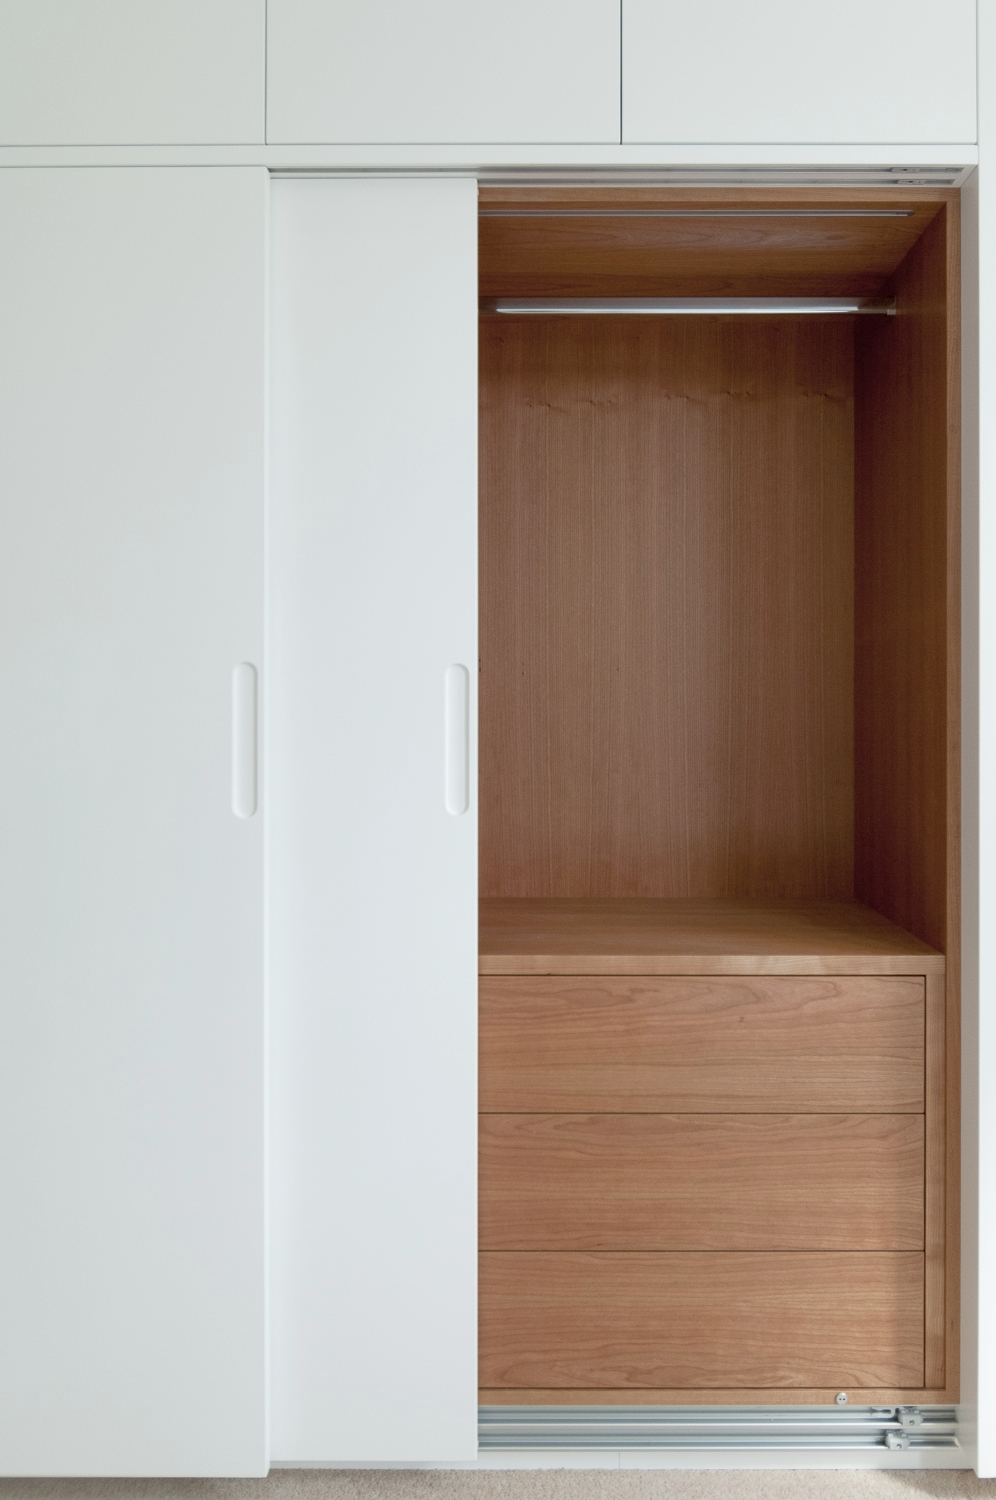 Copy of south kensington, London custom fitted wardrobes hanging space